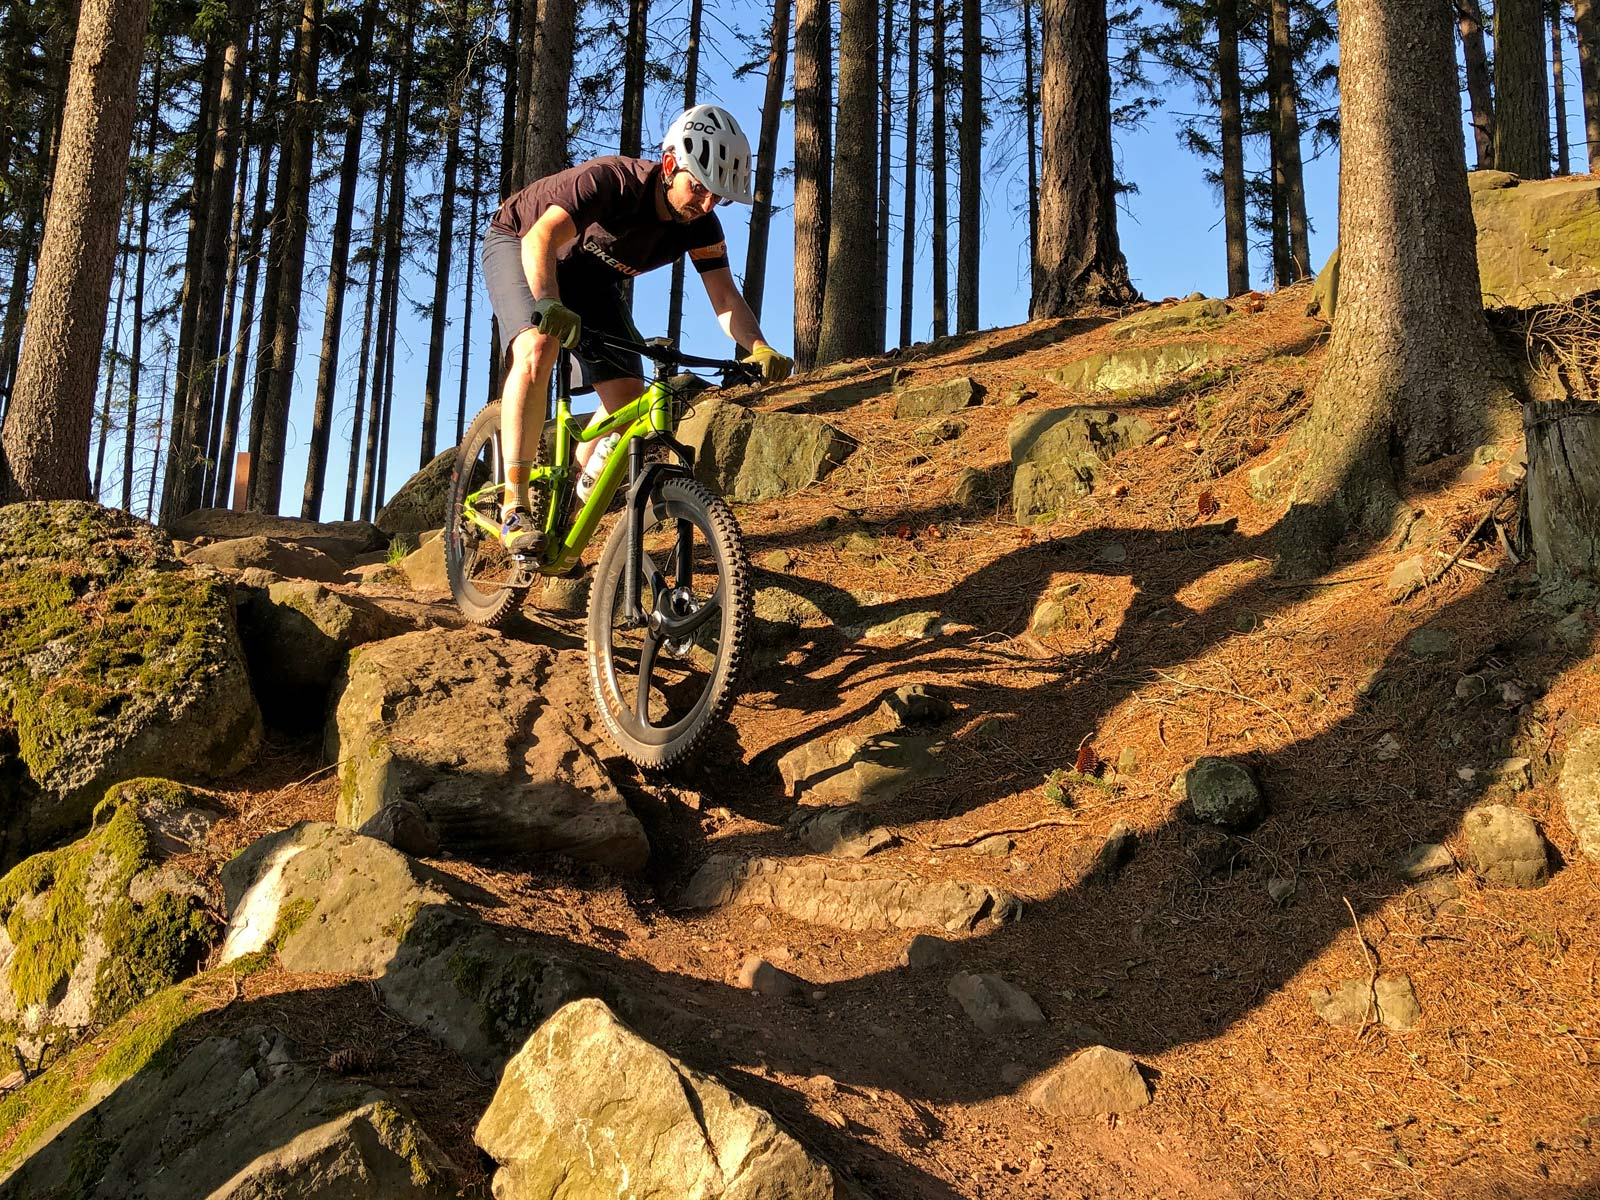 Merida One-Forty 900 alloy MTB long-term review, affordable 140mm travel aluminum trail all-mountain bike